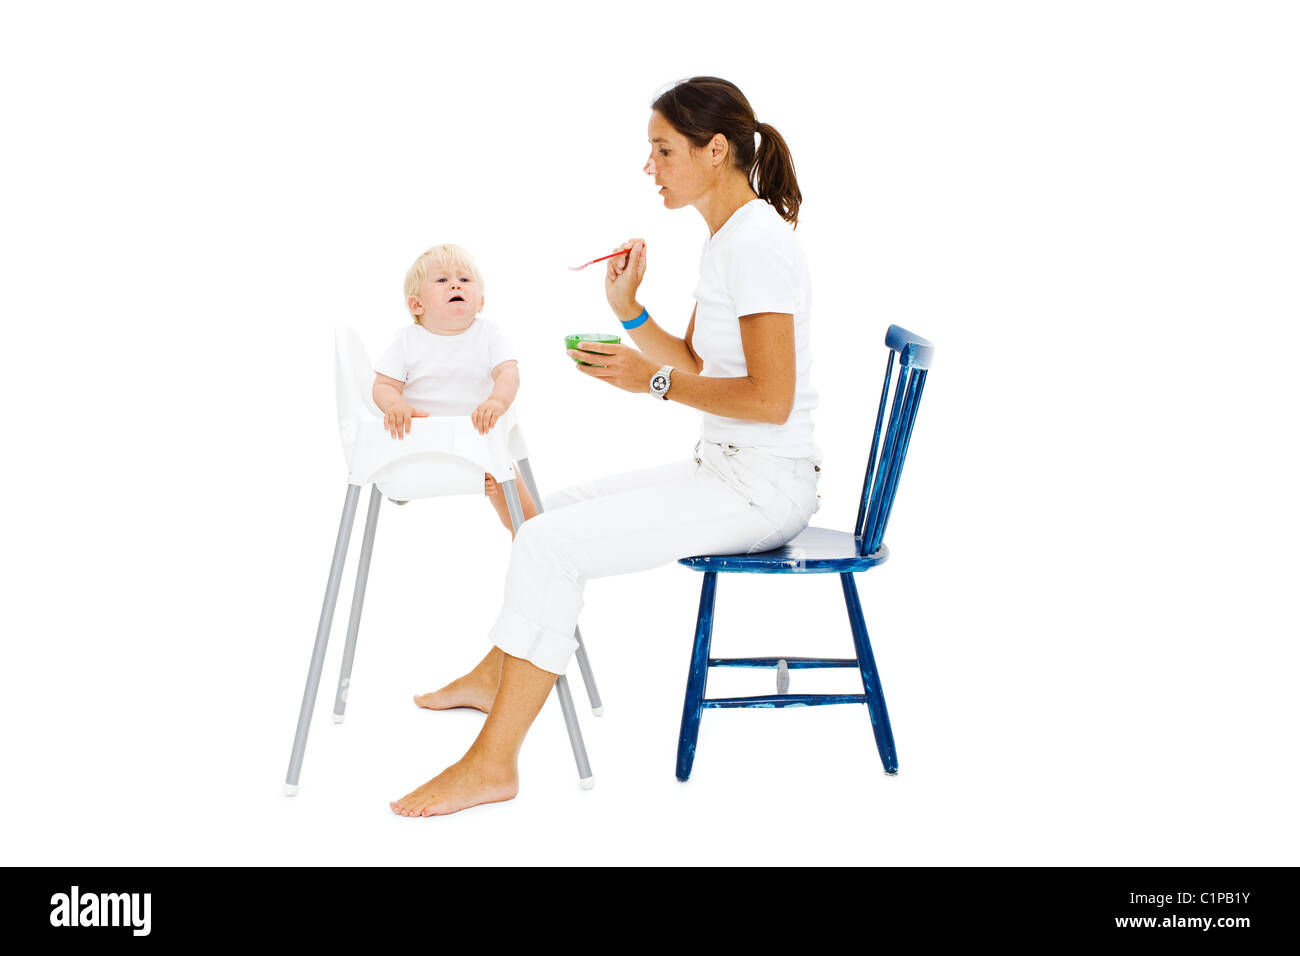 Boy in high chair being fed by mother - Stock Image